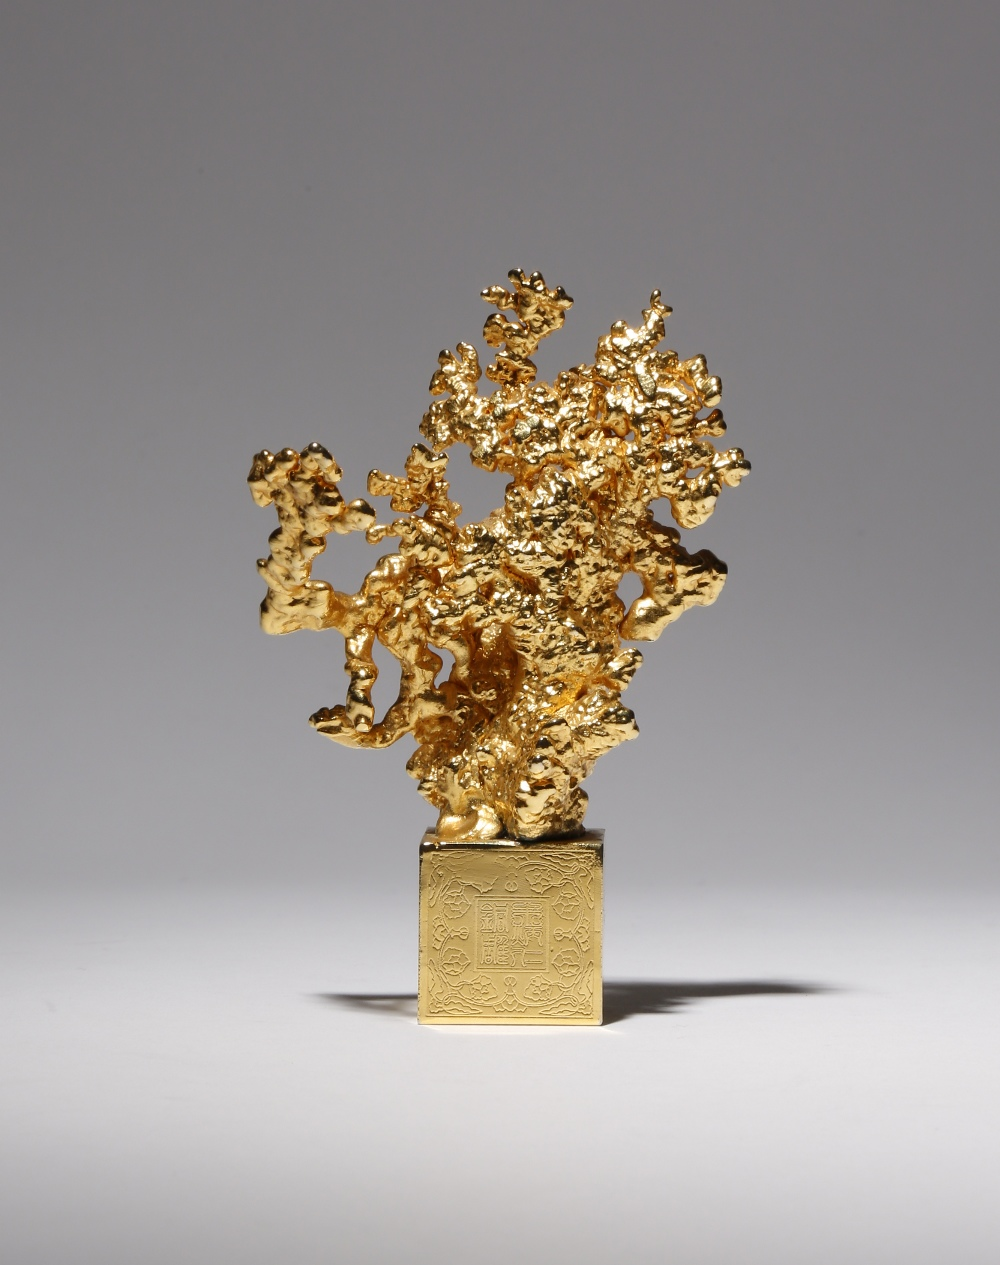 A CHINESE GILT-METAL SCULPTURE BY ZHU BINGREN (B.1944) CONTEMPORARY Naturalistically formed as a